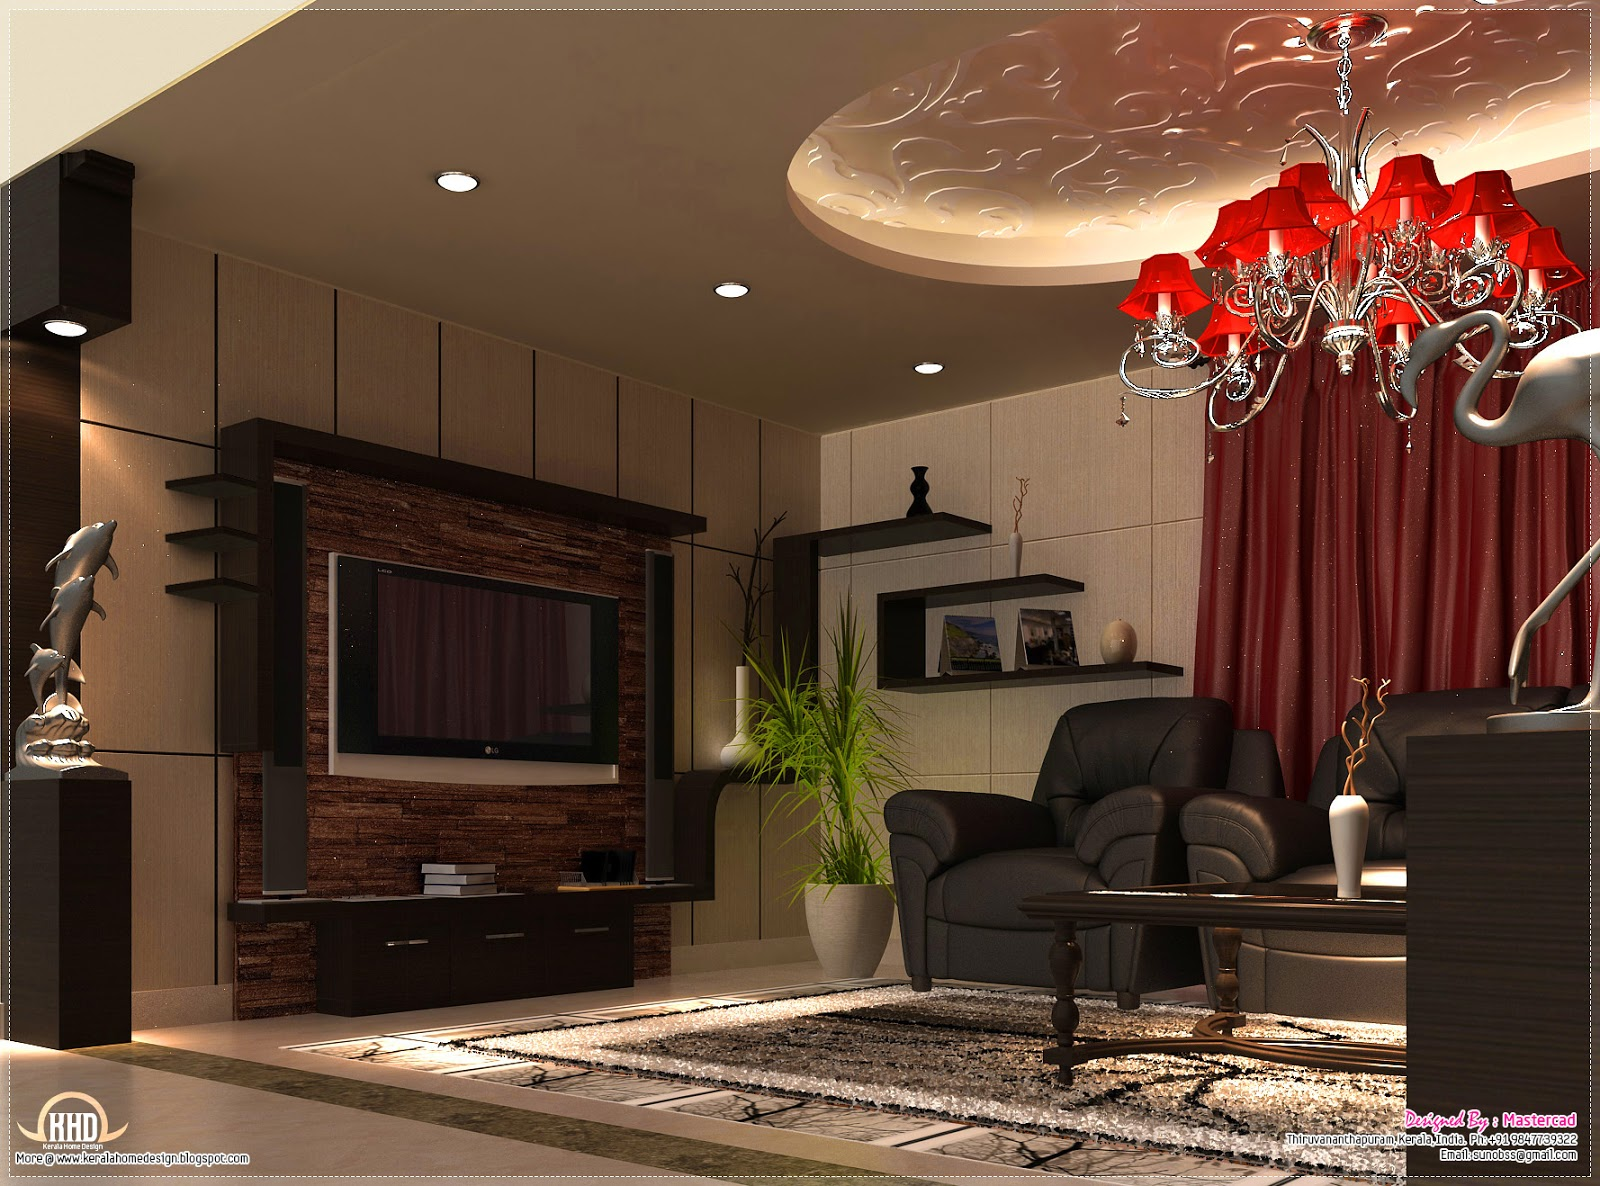 Interior design ideas kerala home design and floor plans for What is interior decoration